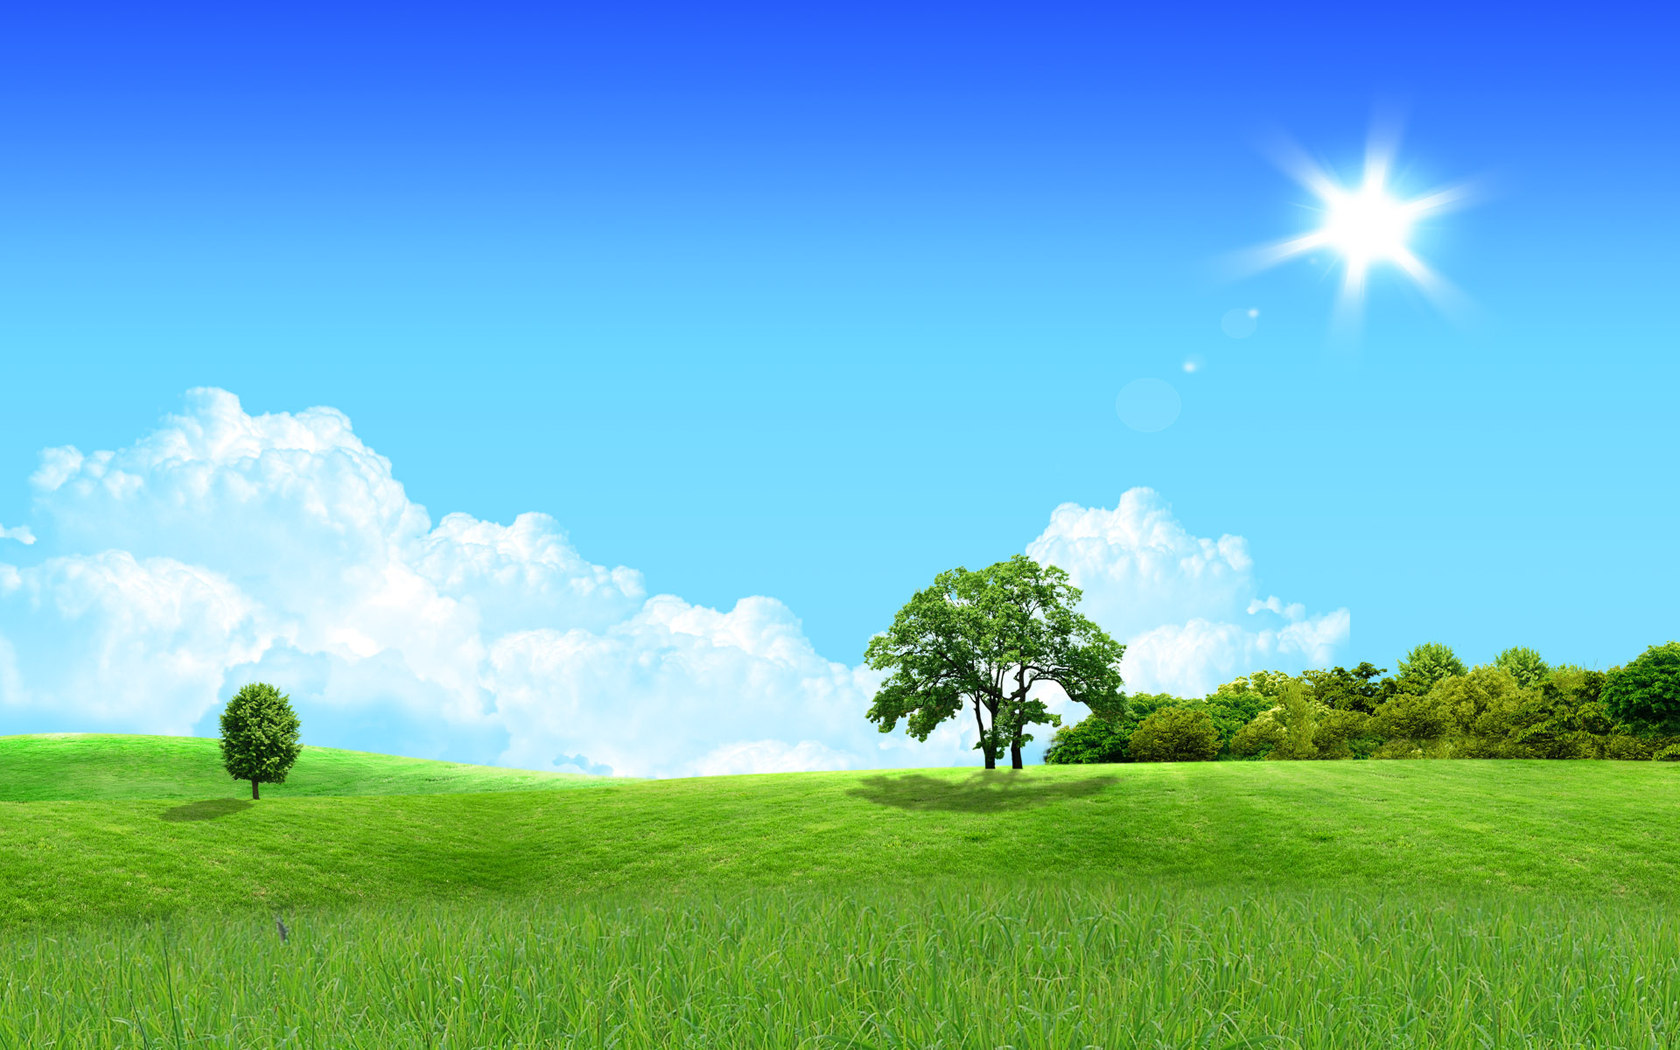 Summer Landscape Wallpapers 22336